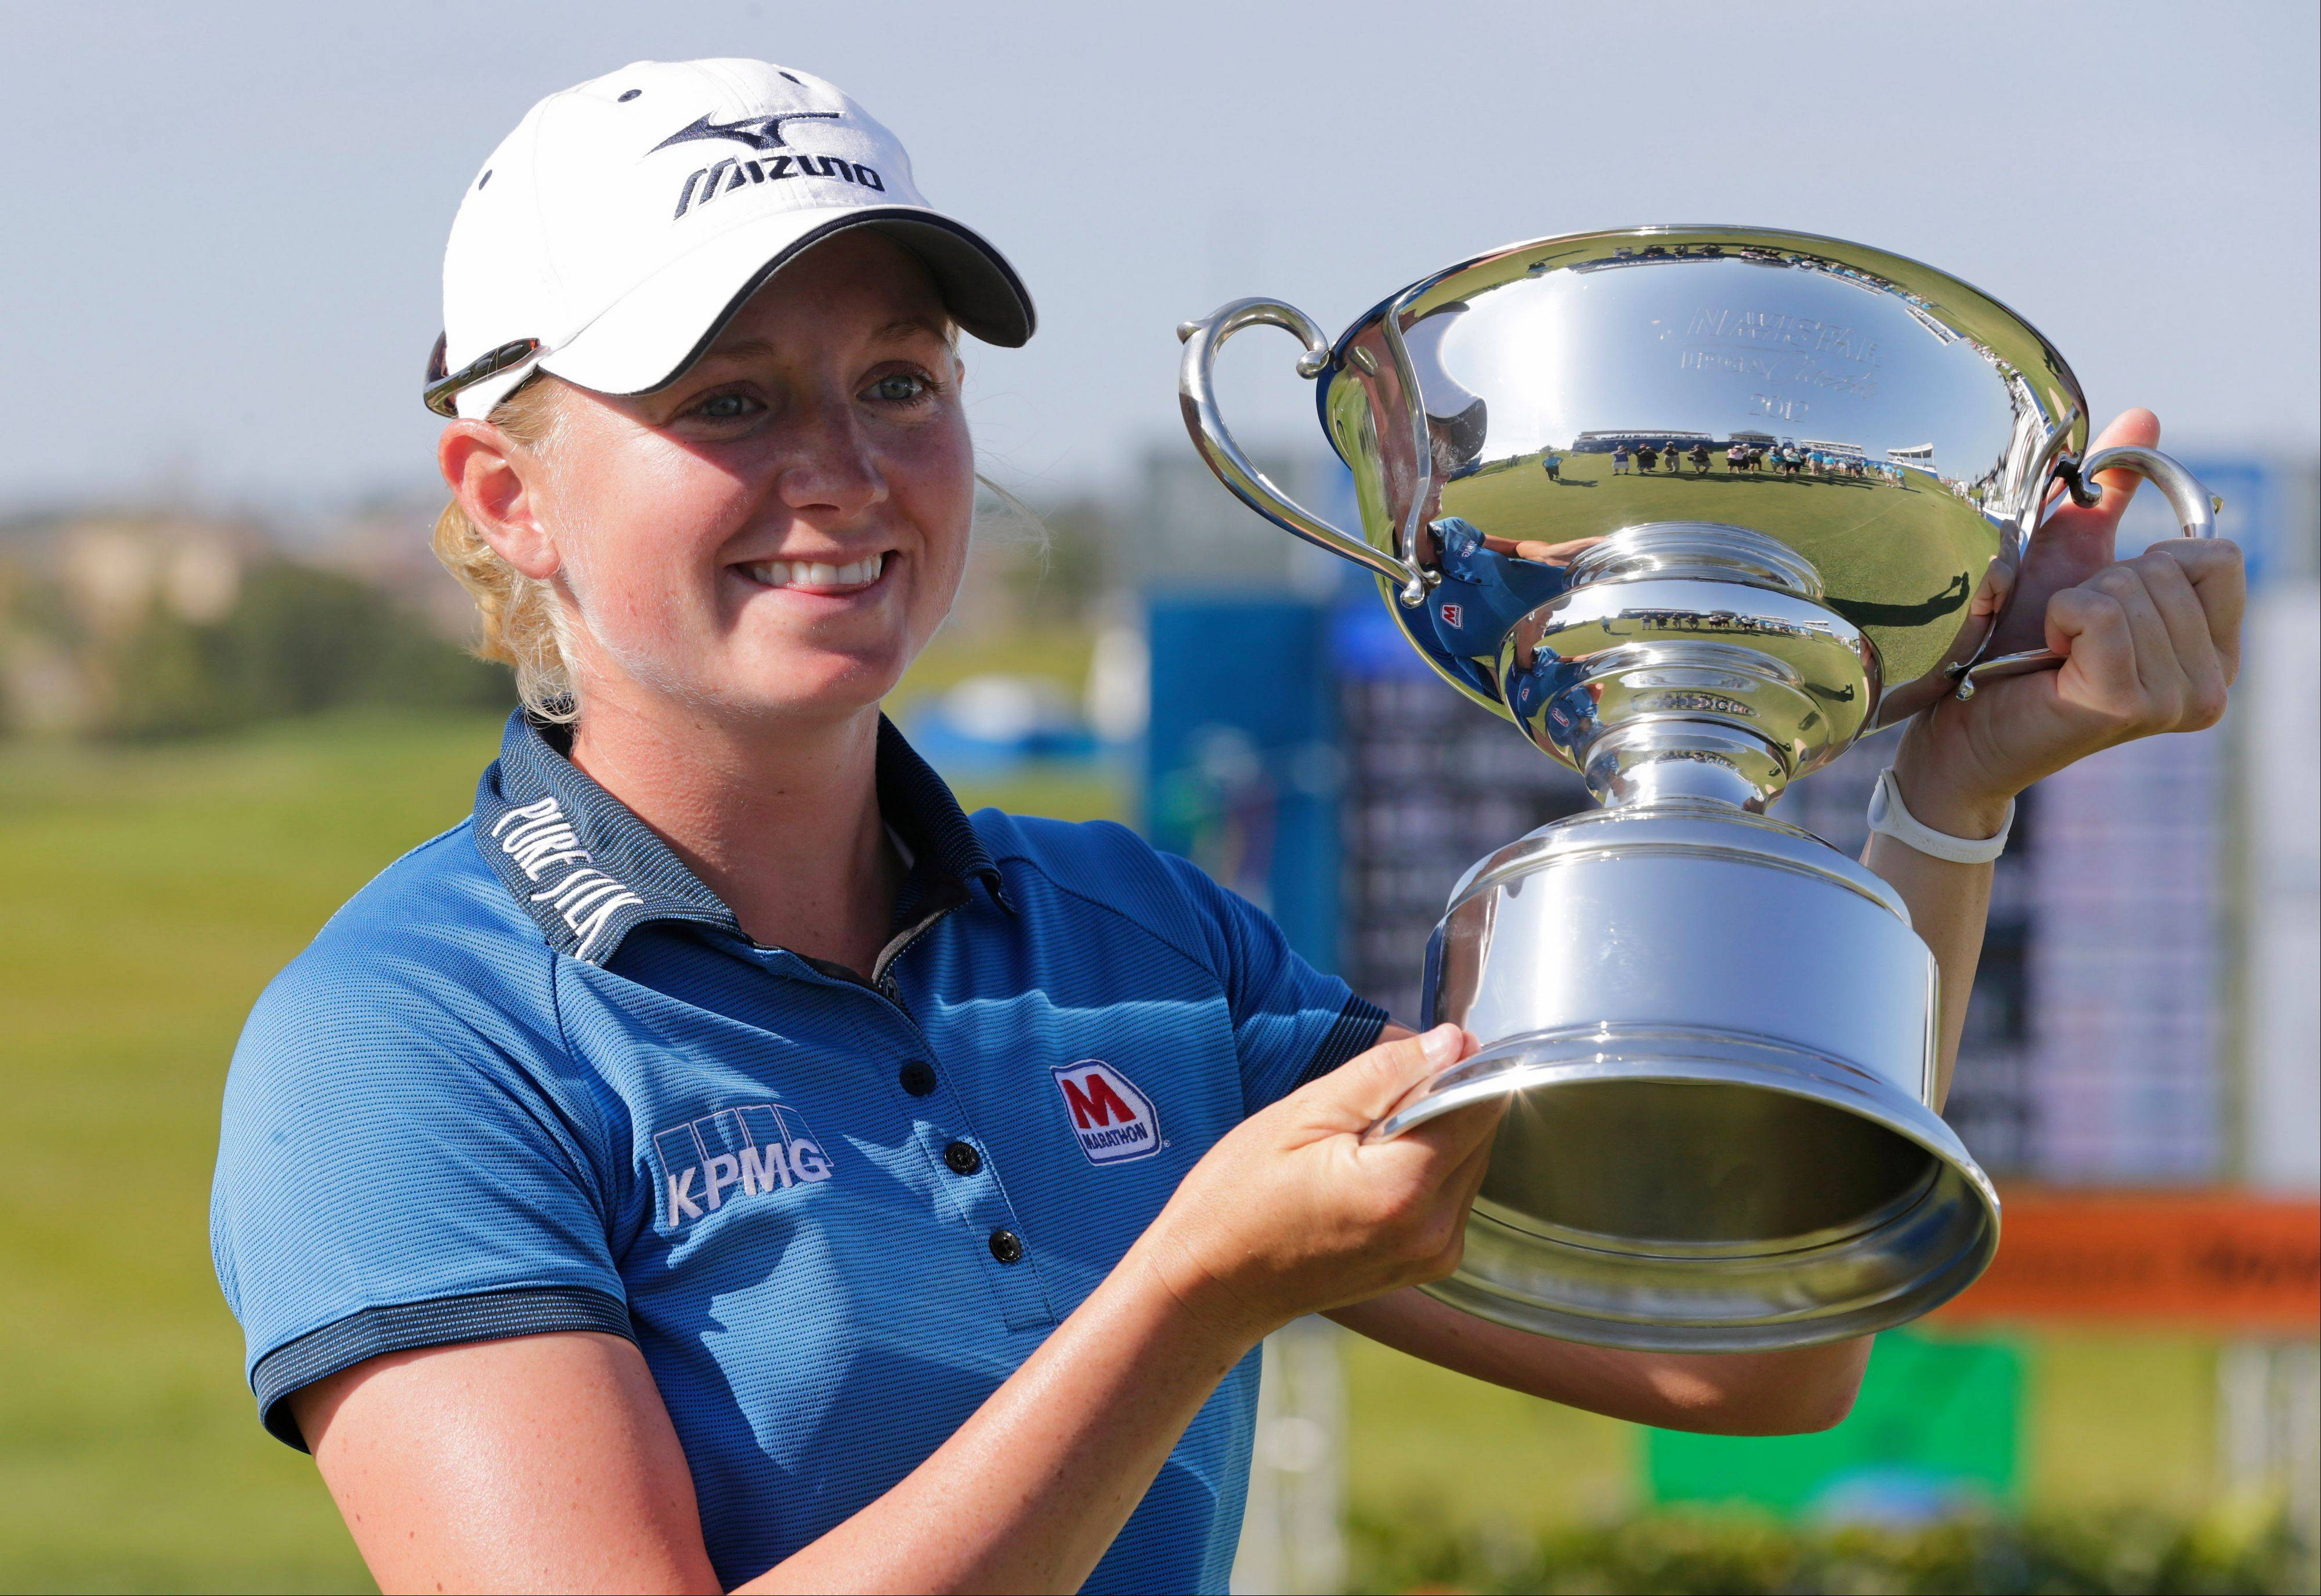 Stacy Lewis displays the trophy after winning the Navistar LPGA Classic golf tournament on Sunday at the Robert Trent Jones Golf Trail in Prattville, Ala.